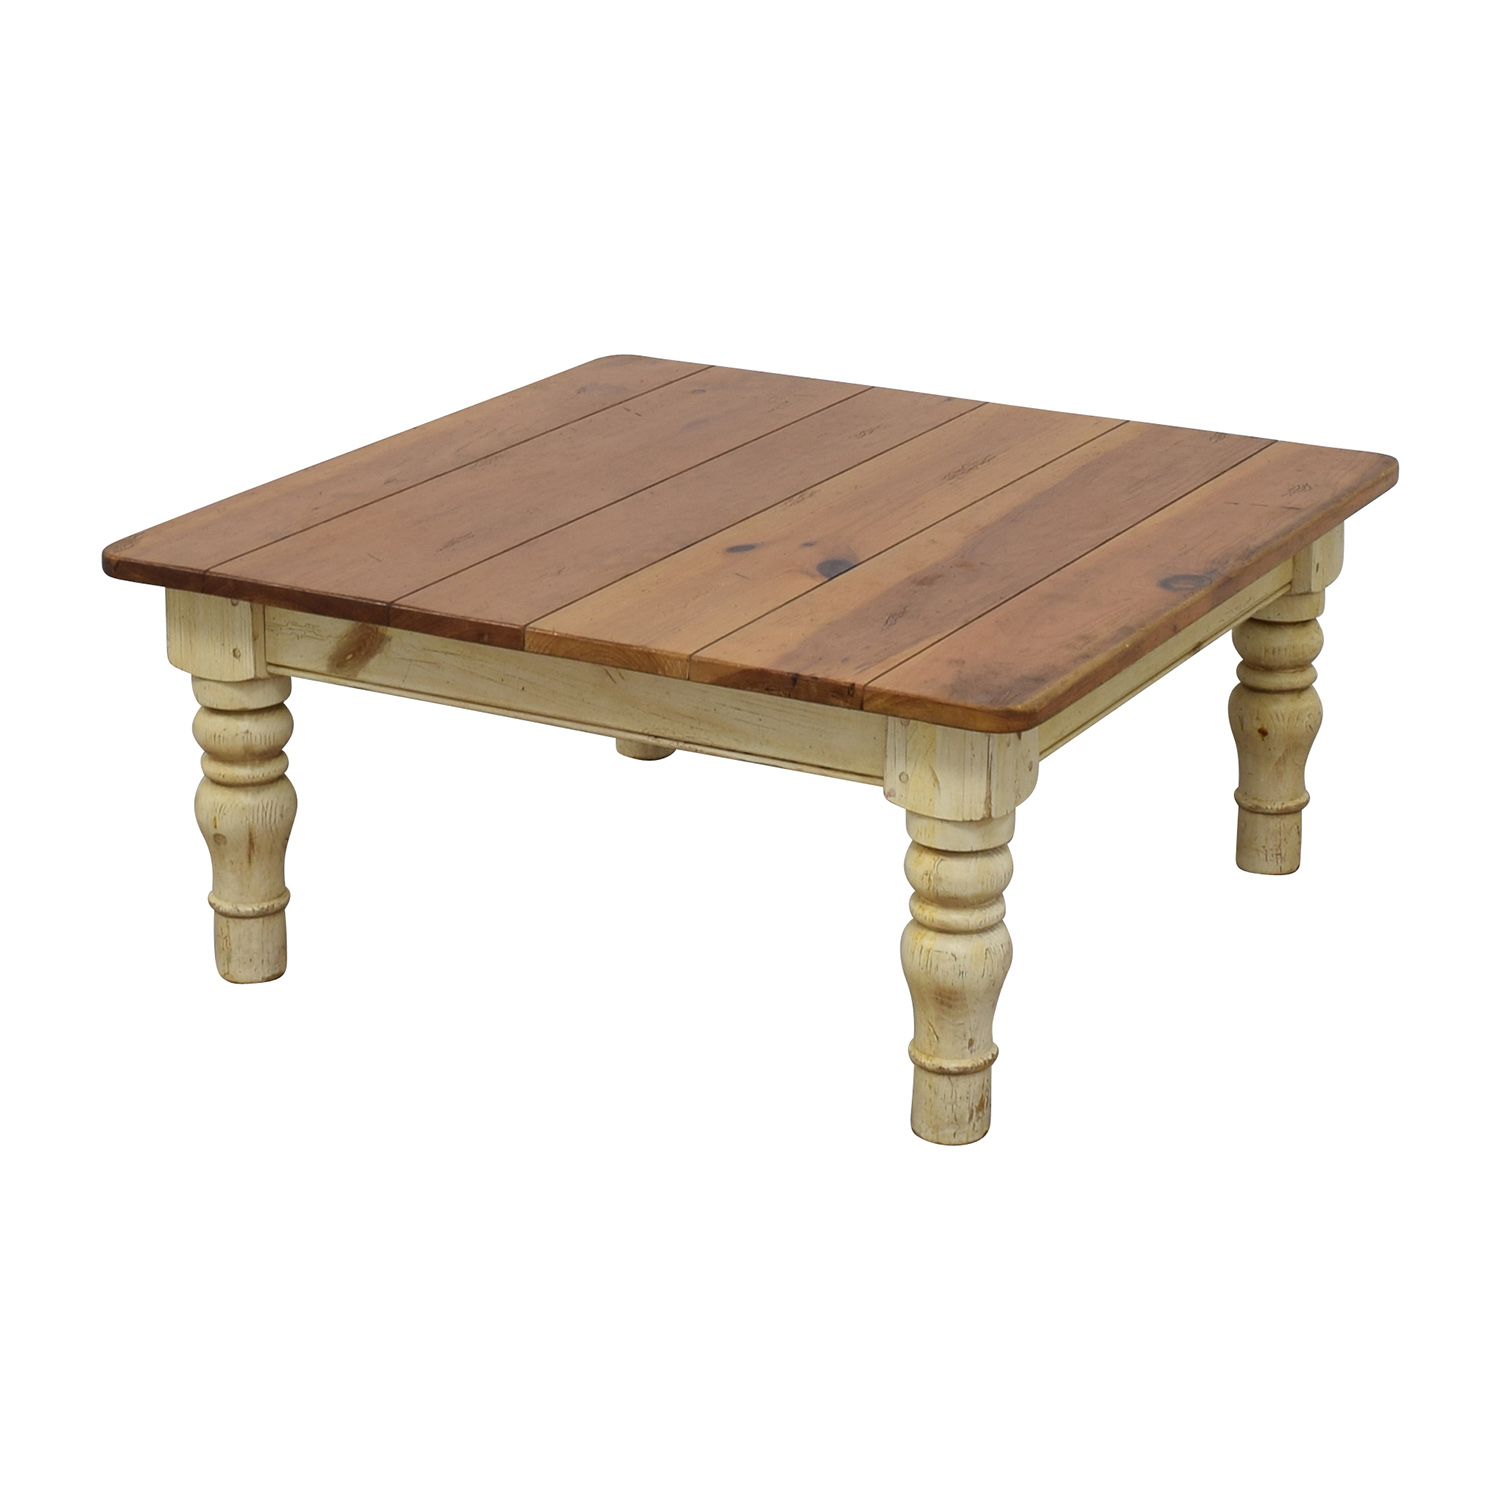 90 Off Ethan Allen Ethan Allen Farmhouse Cherry Wood Coffee Table Tables